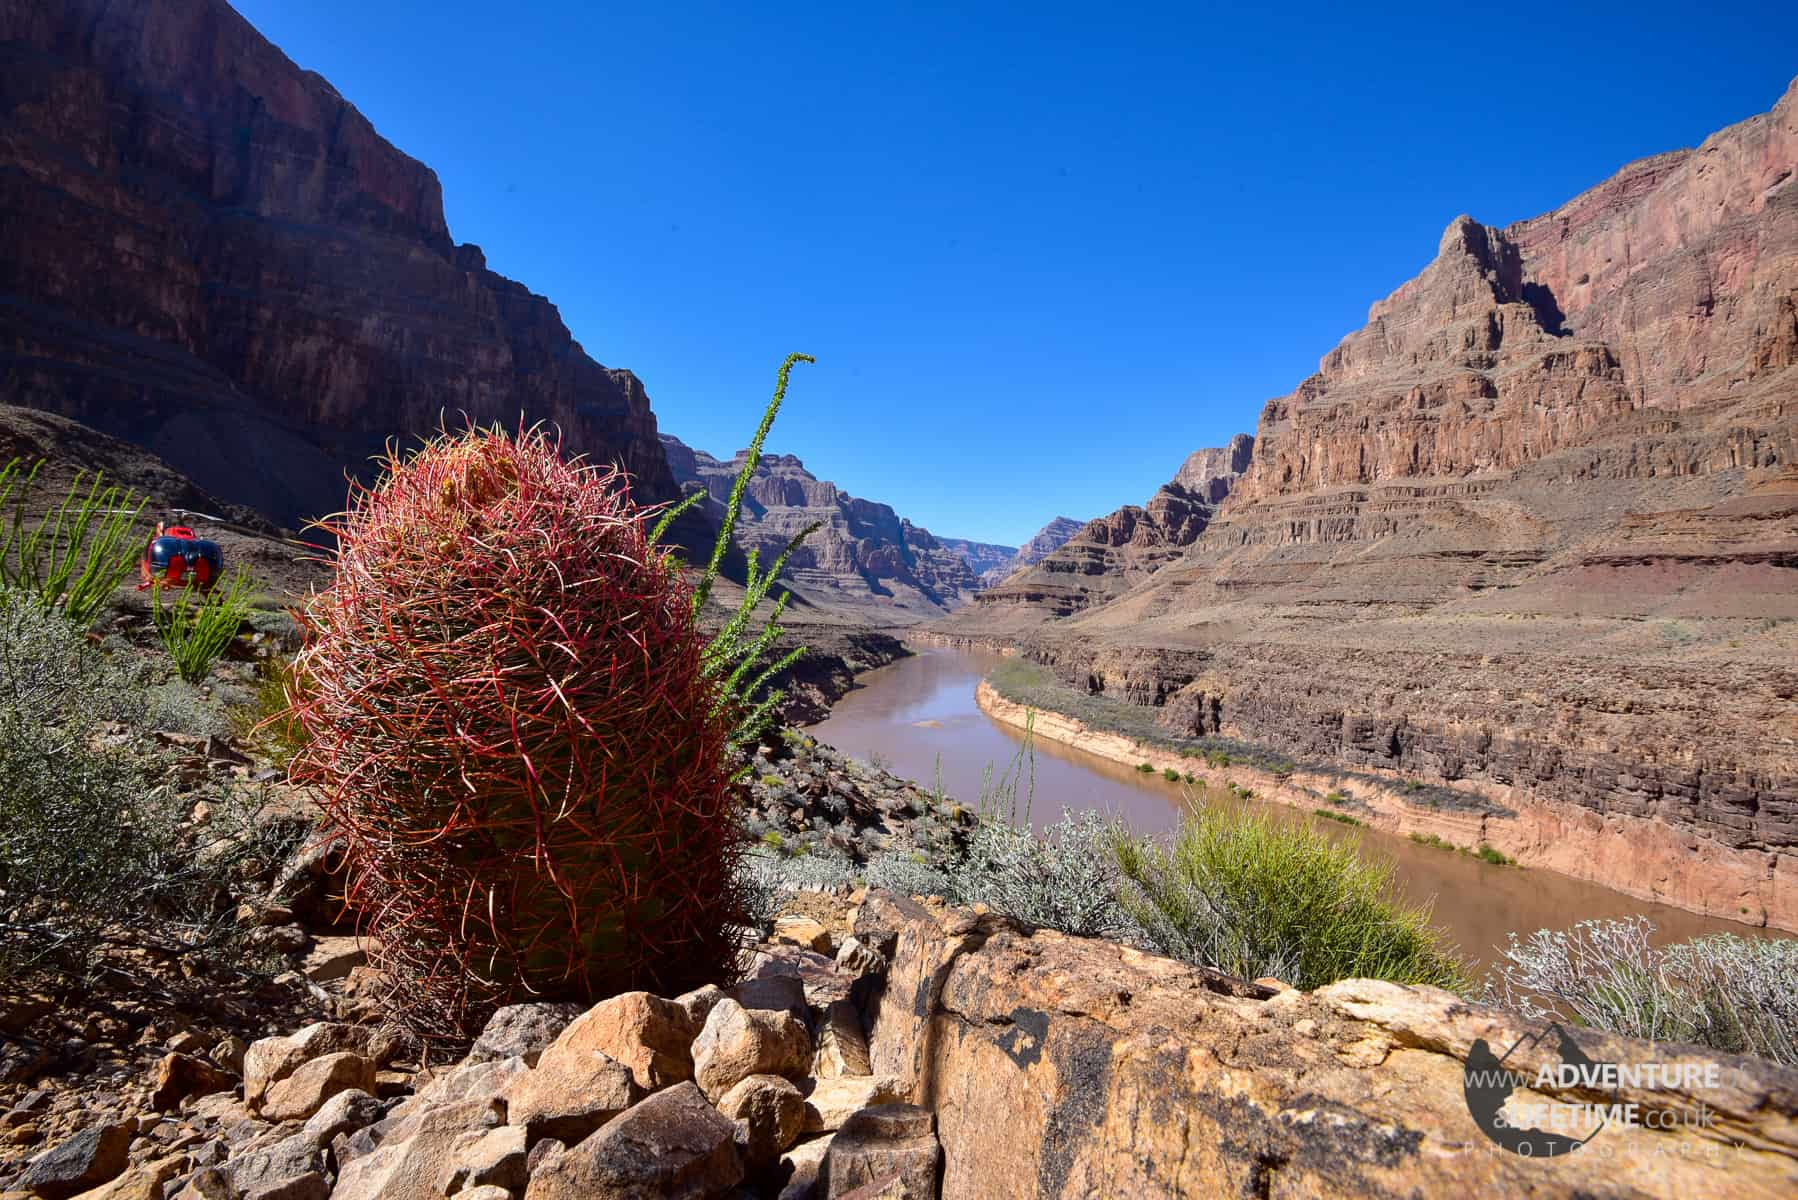 Cactus at The Grand Canyon